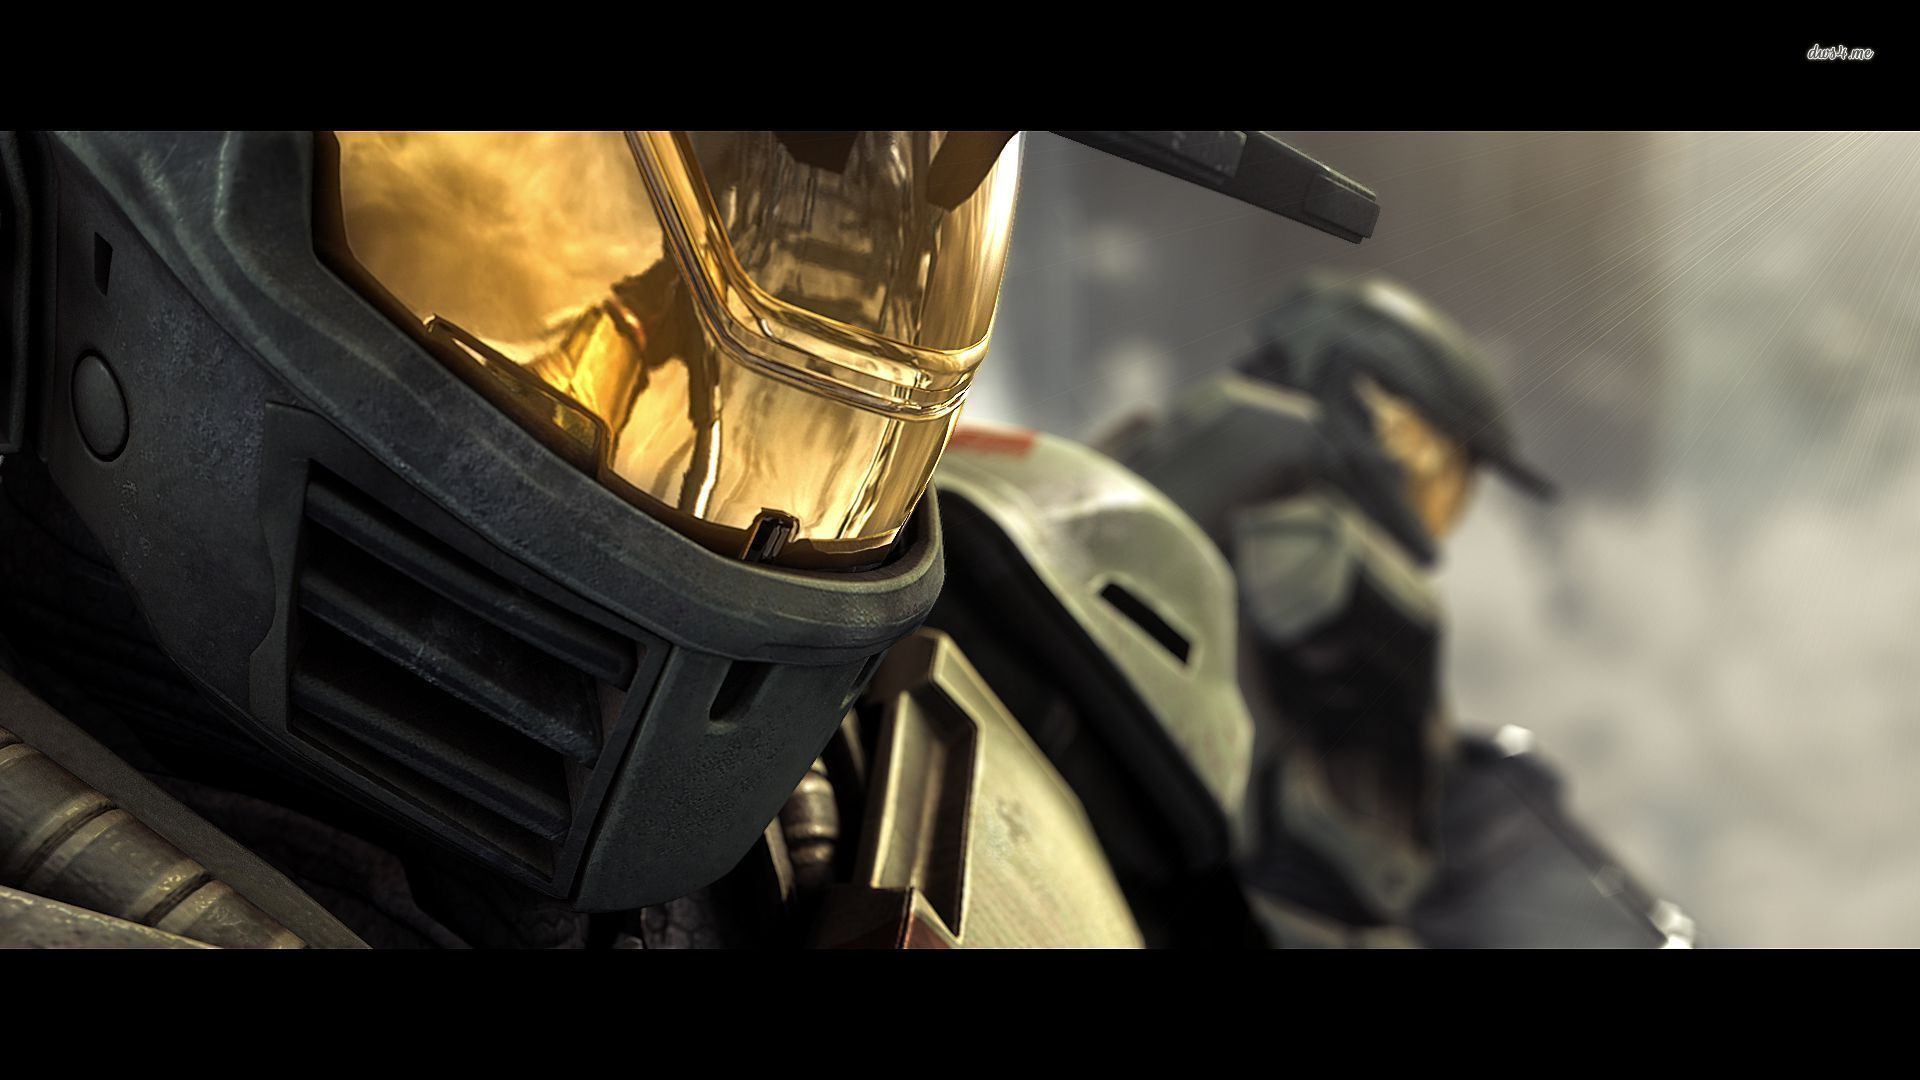 ... Master Chief - Halo wallpaper 1920x1080 ...